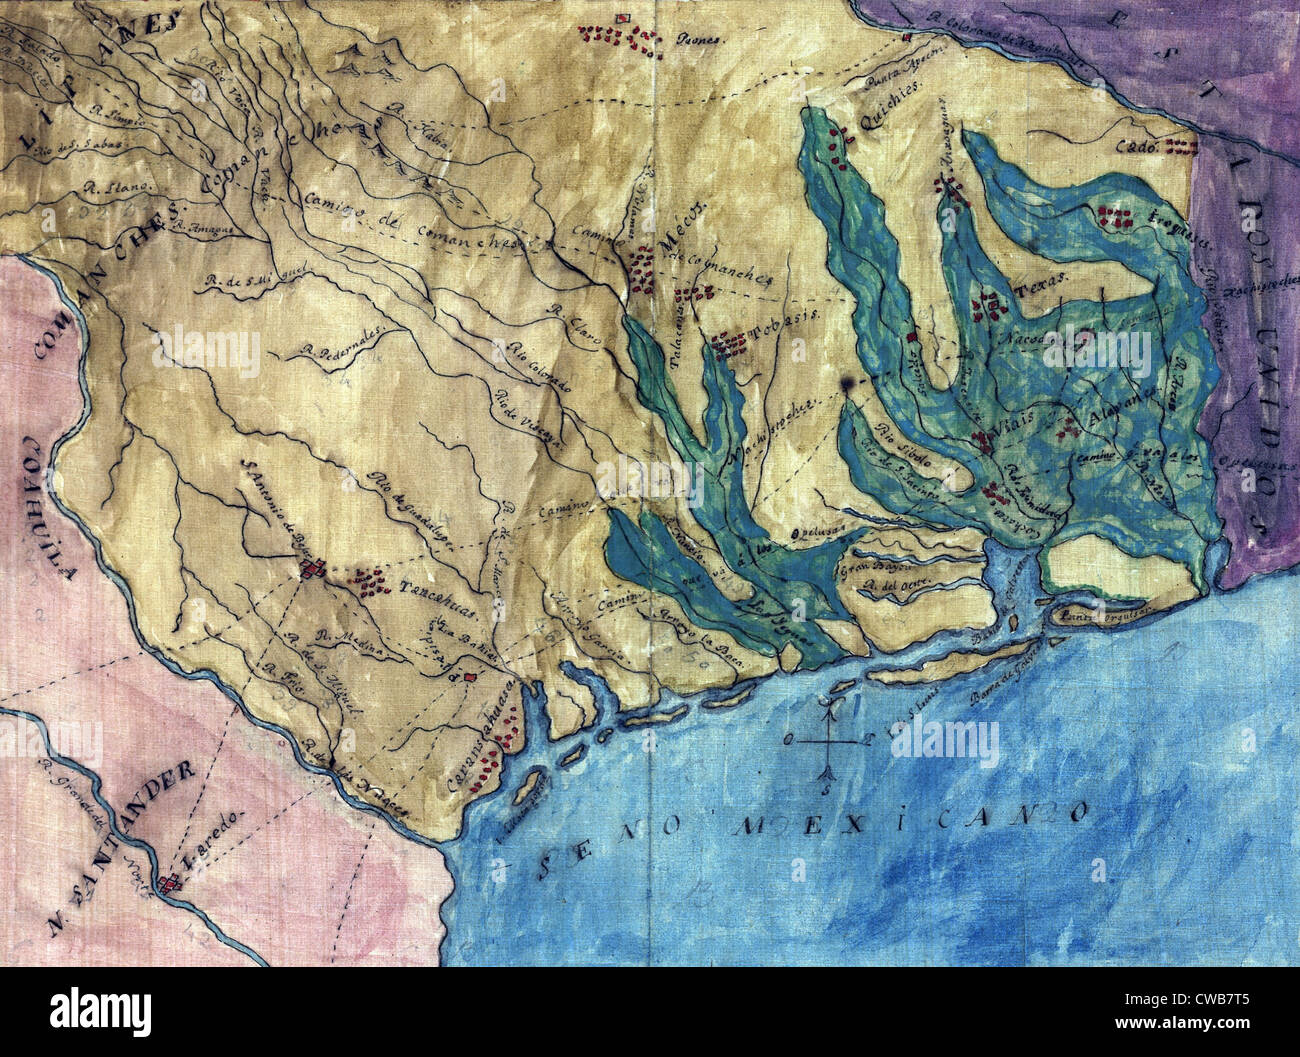 Topographic map of the Province of Texas. Stephen F. Austin's hand-drawn map of the Spanish Province of Texas. - Stock Image